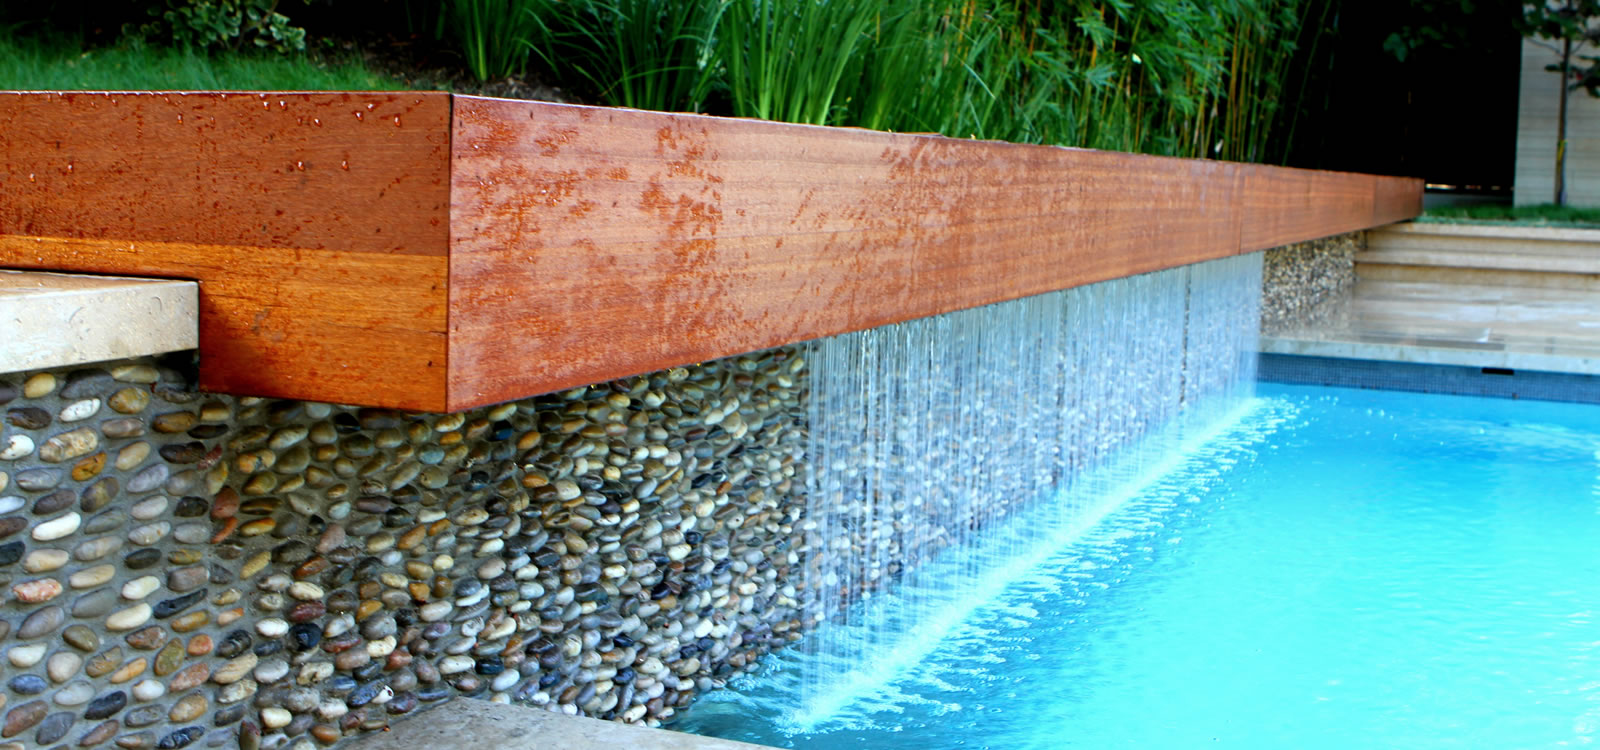 Beverly hills pool spa design with custom water feature for Custom pool designs